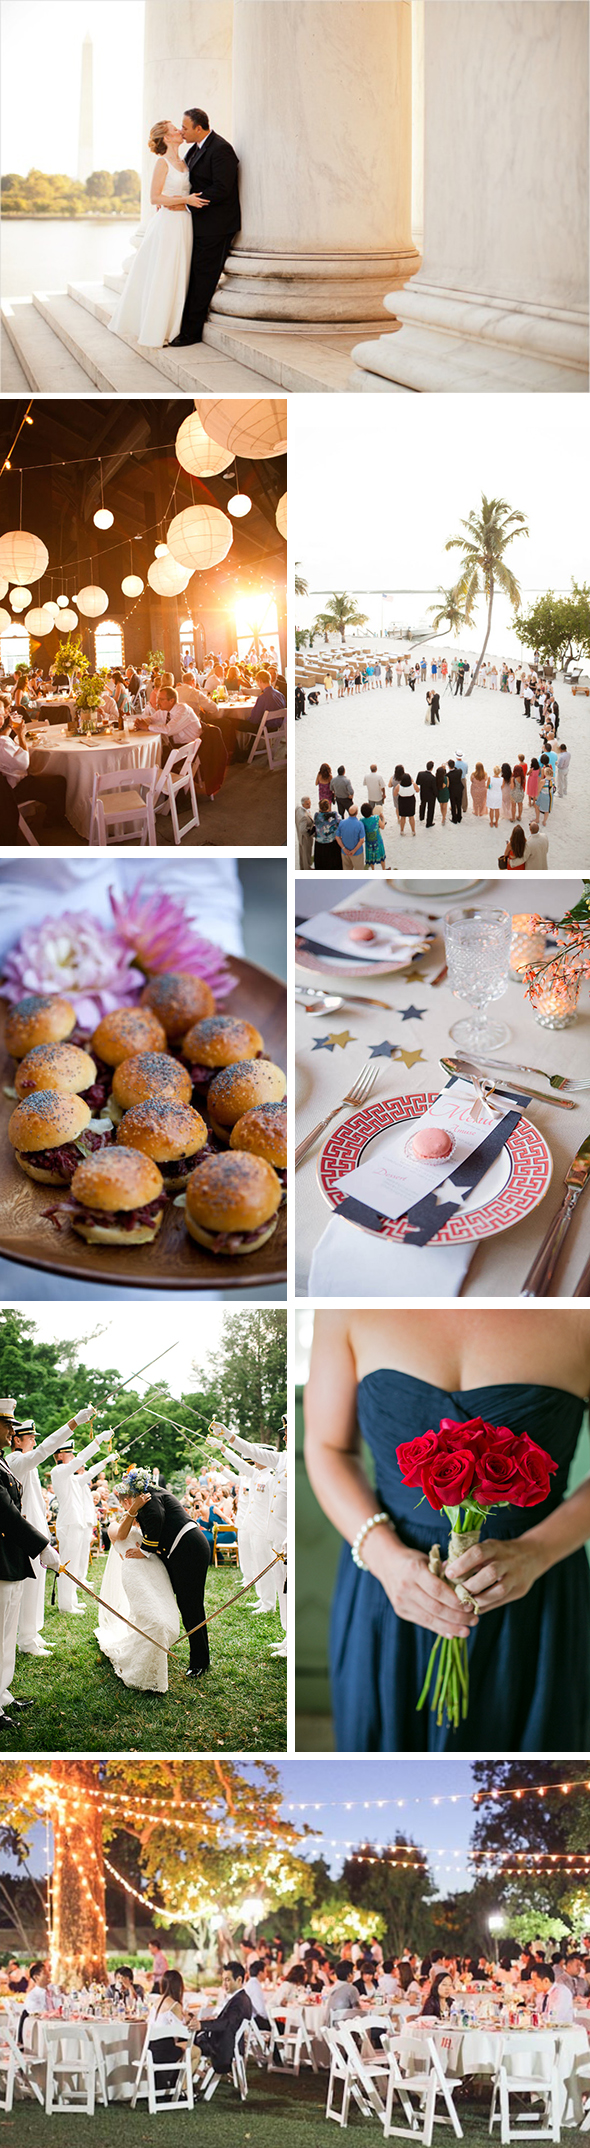 memorial day wedding ideas Memorial Day Weekend Destination Weddings